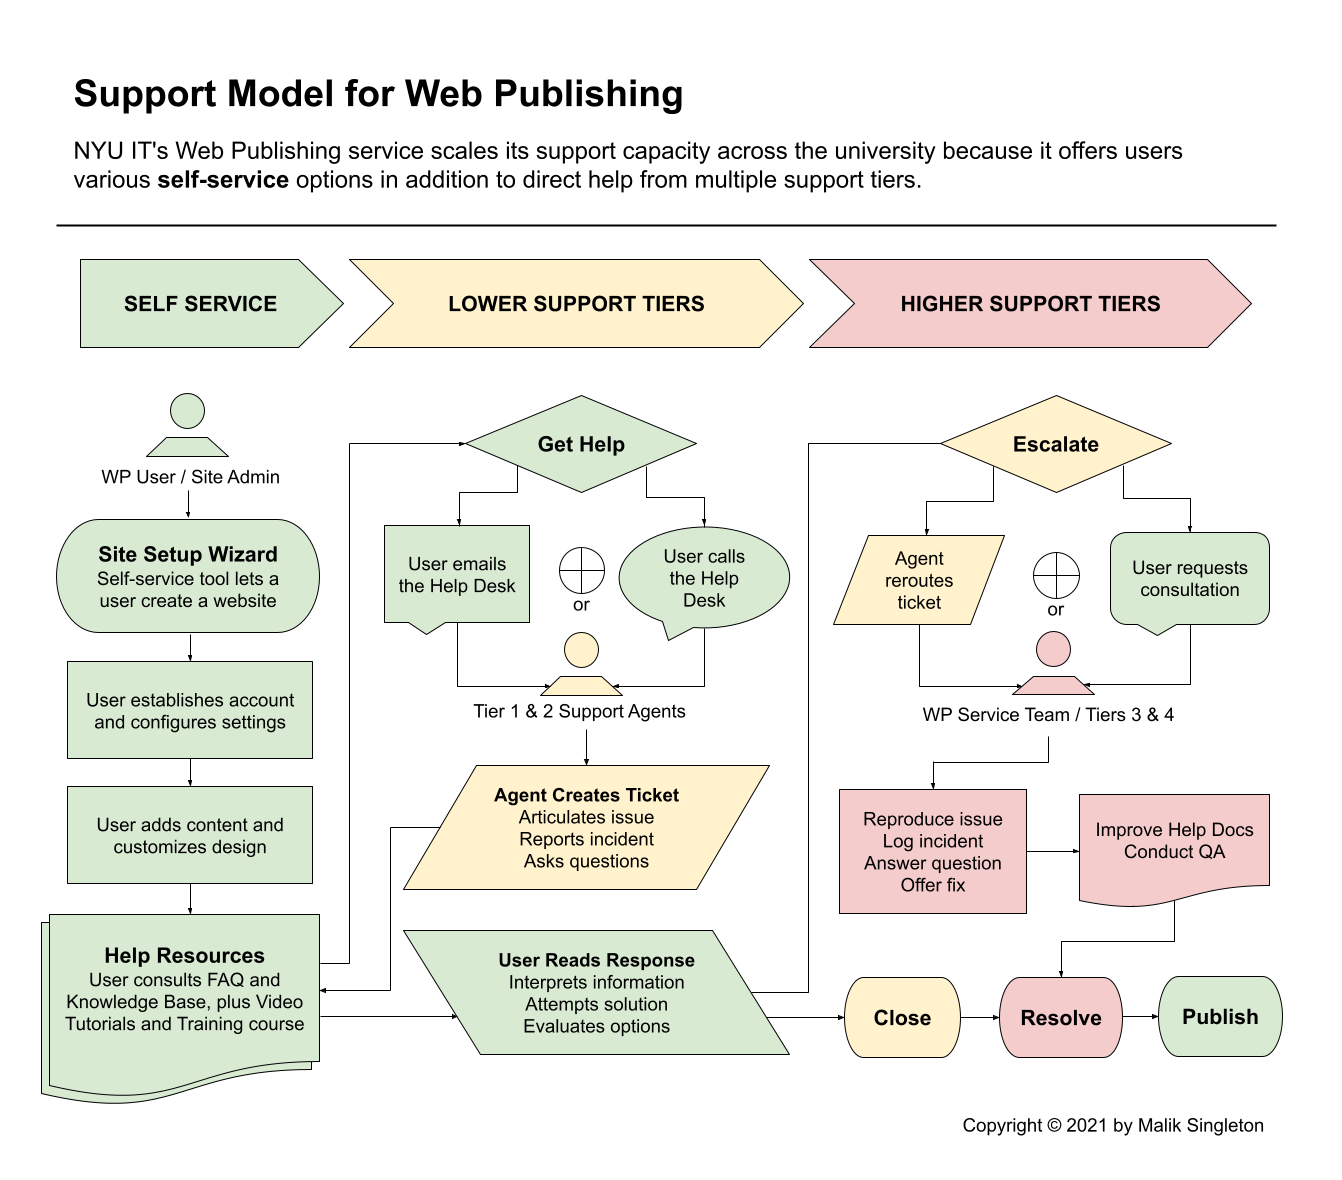 Flowchart diagram depicts the way the Web Publishing service's support model is organized, detailing the self-service options and the tiered help options.